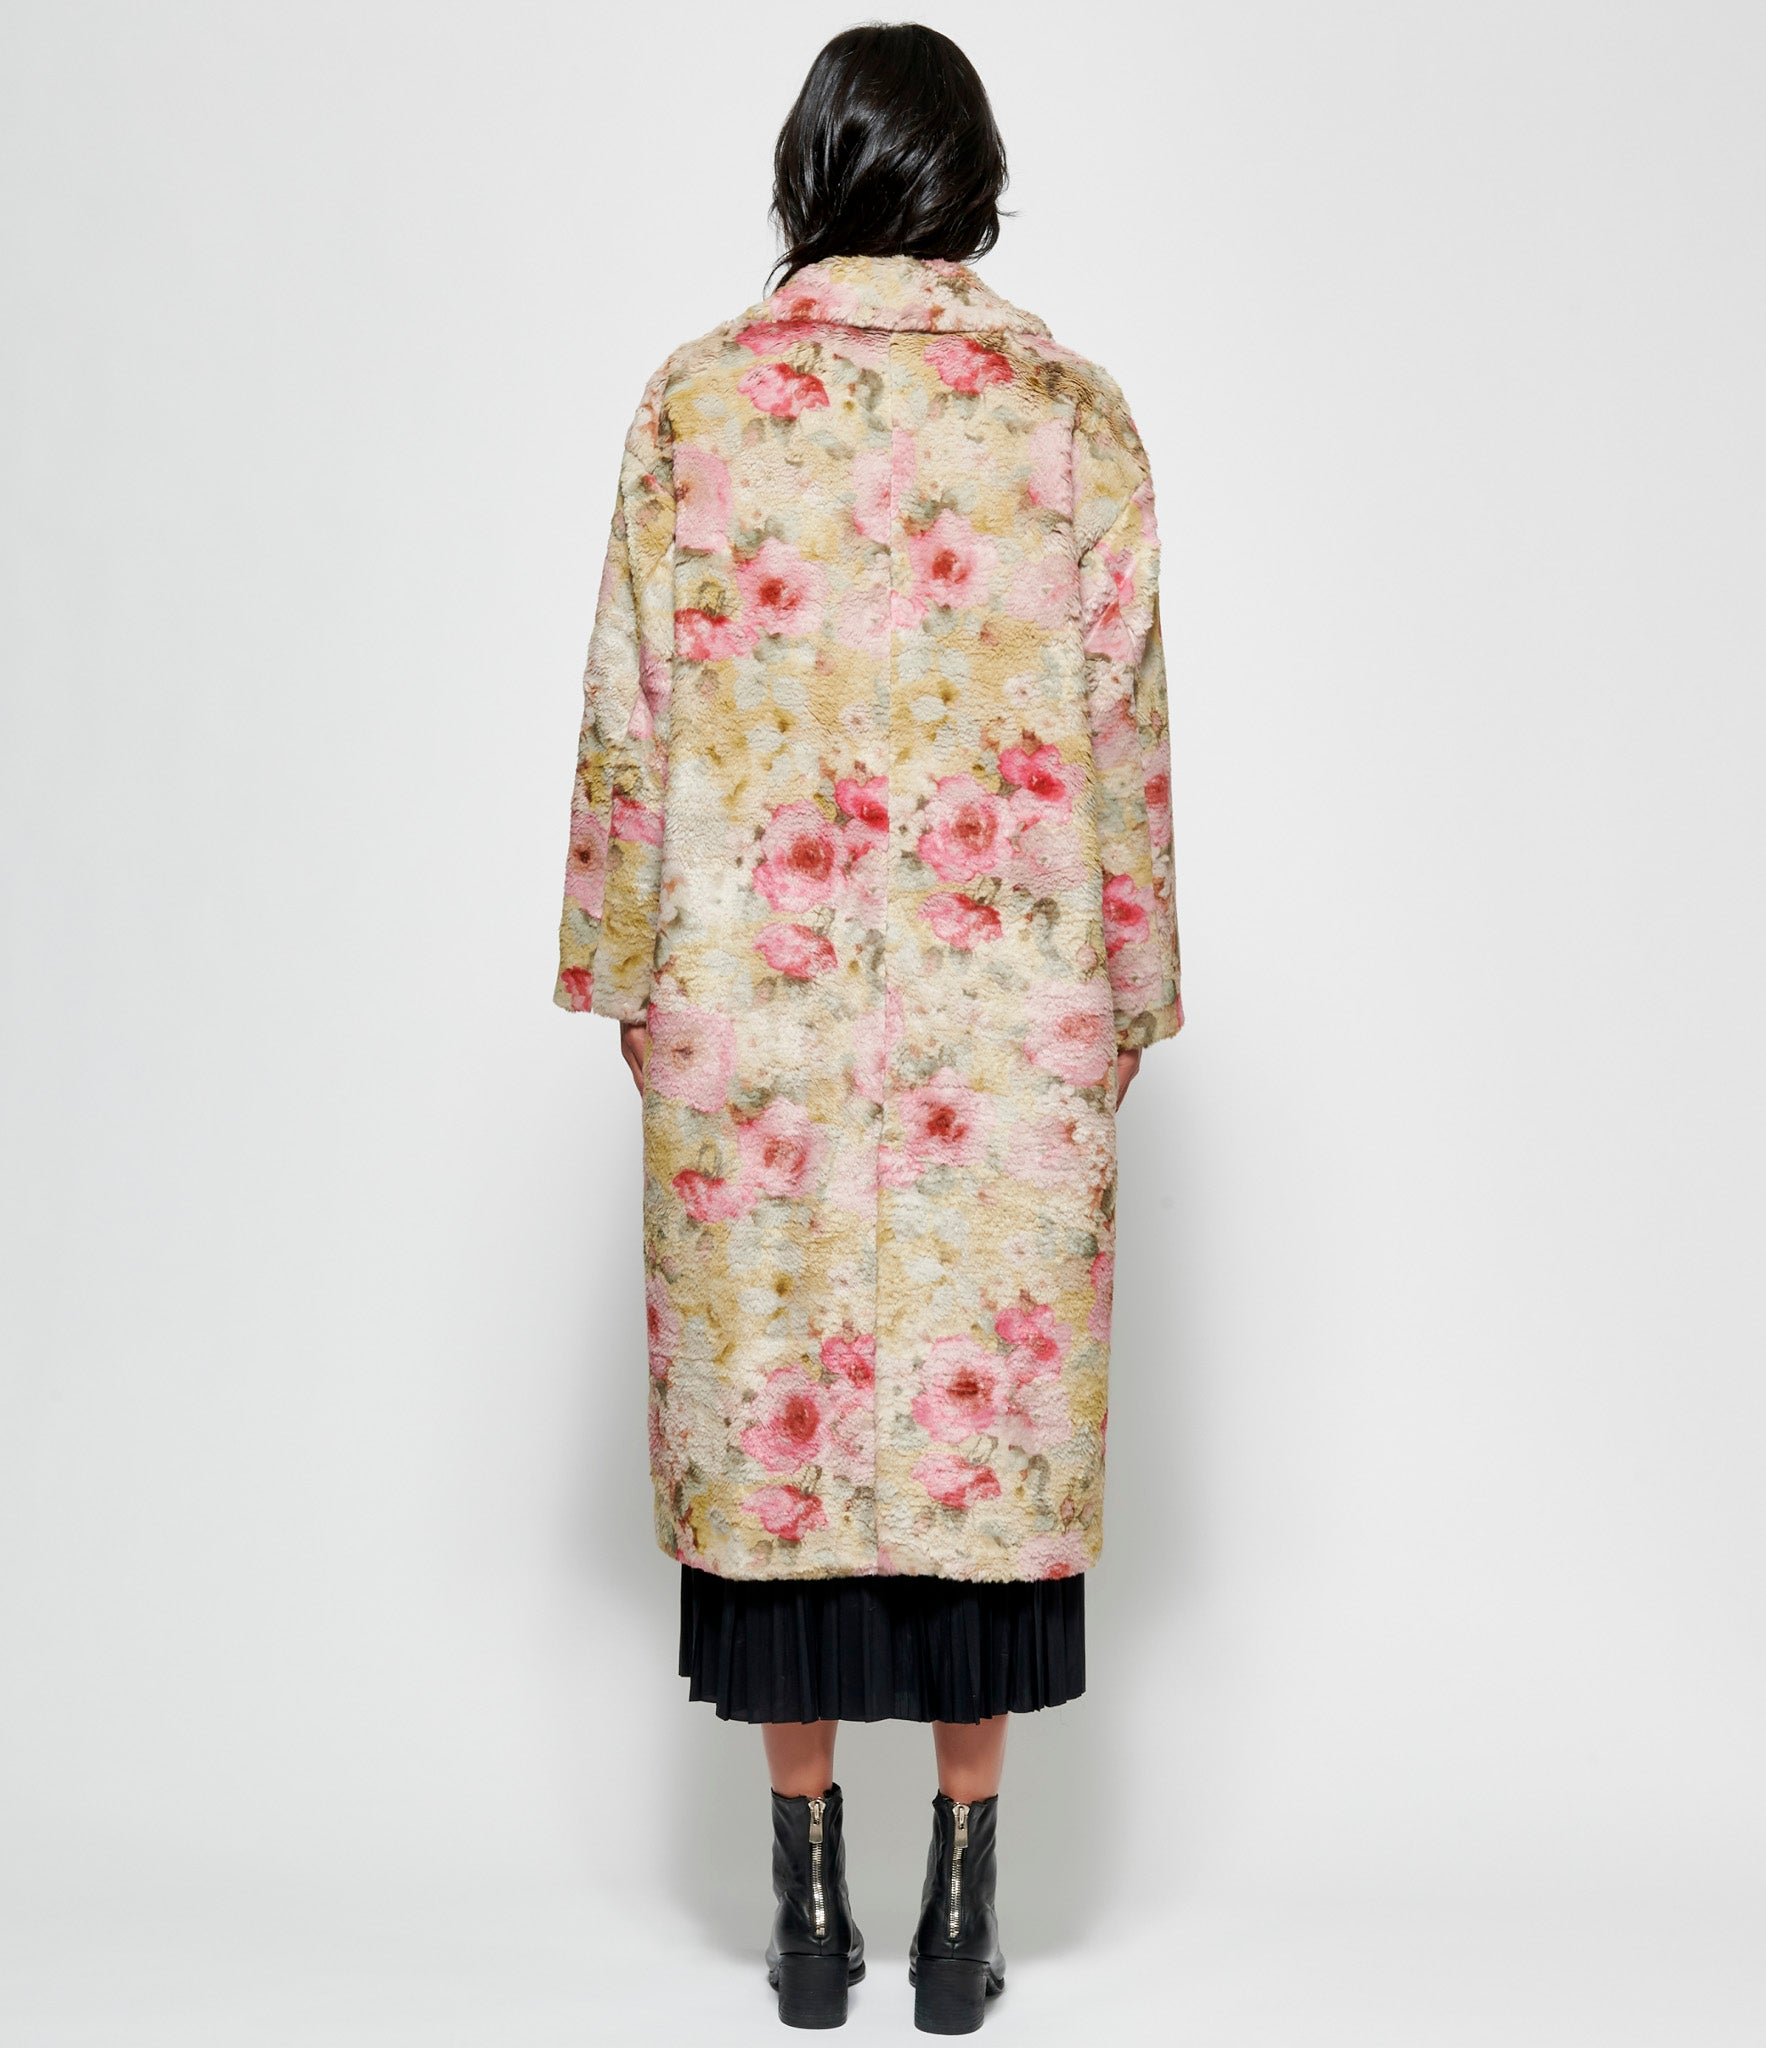 Leur Logette Monet Flower Faux Fur Coat